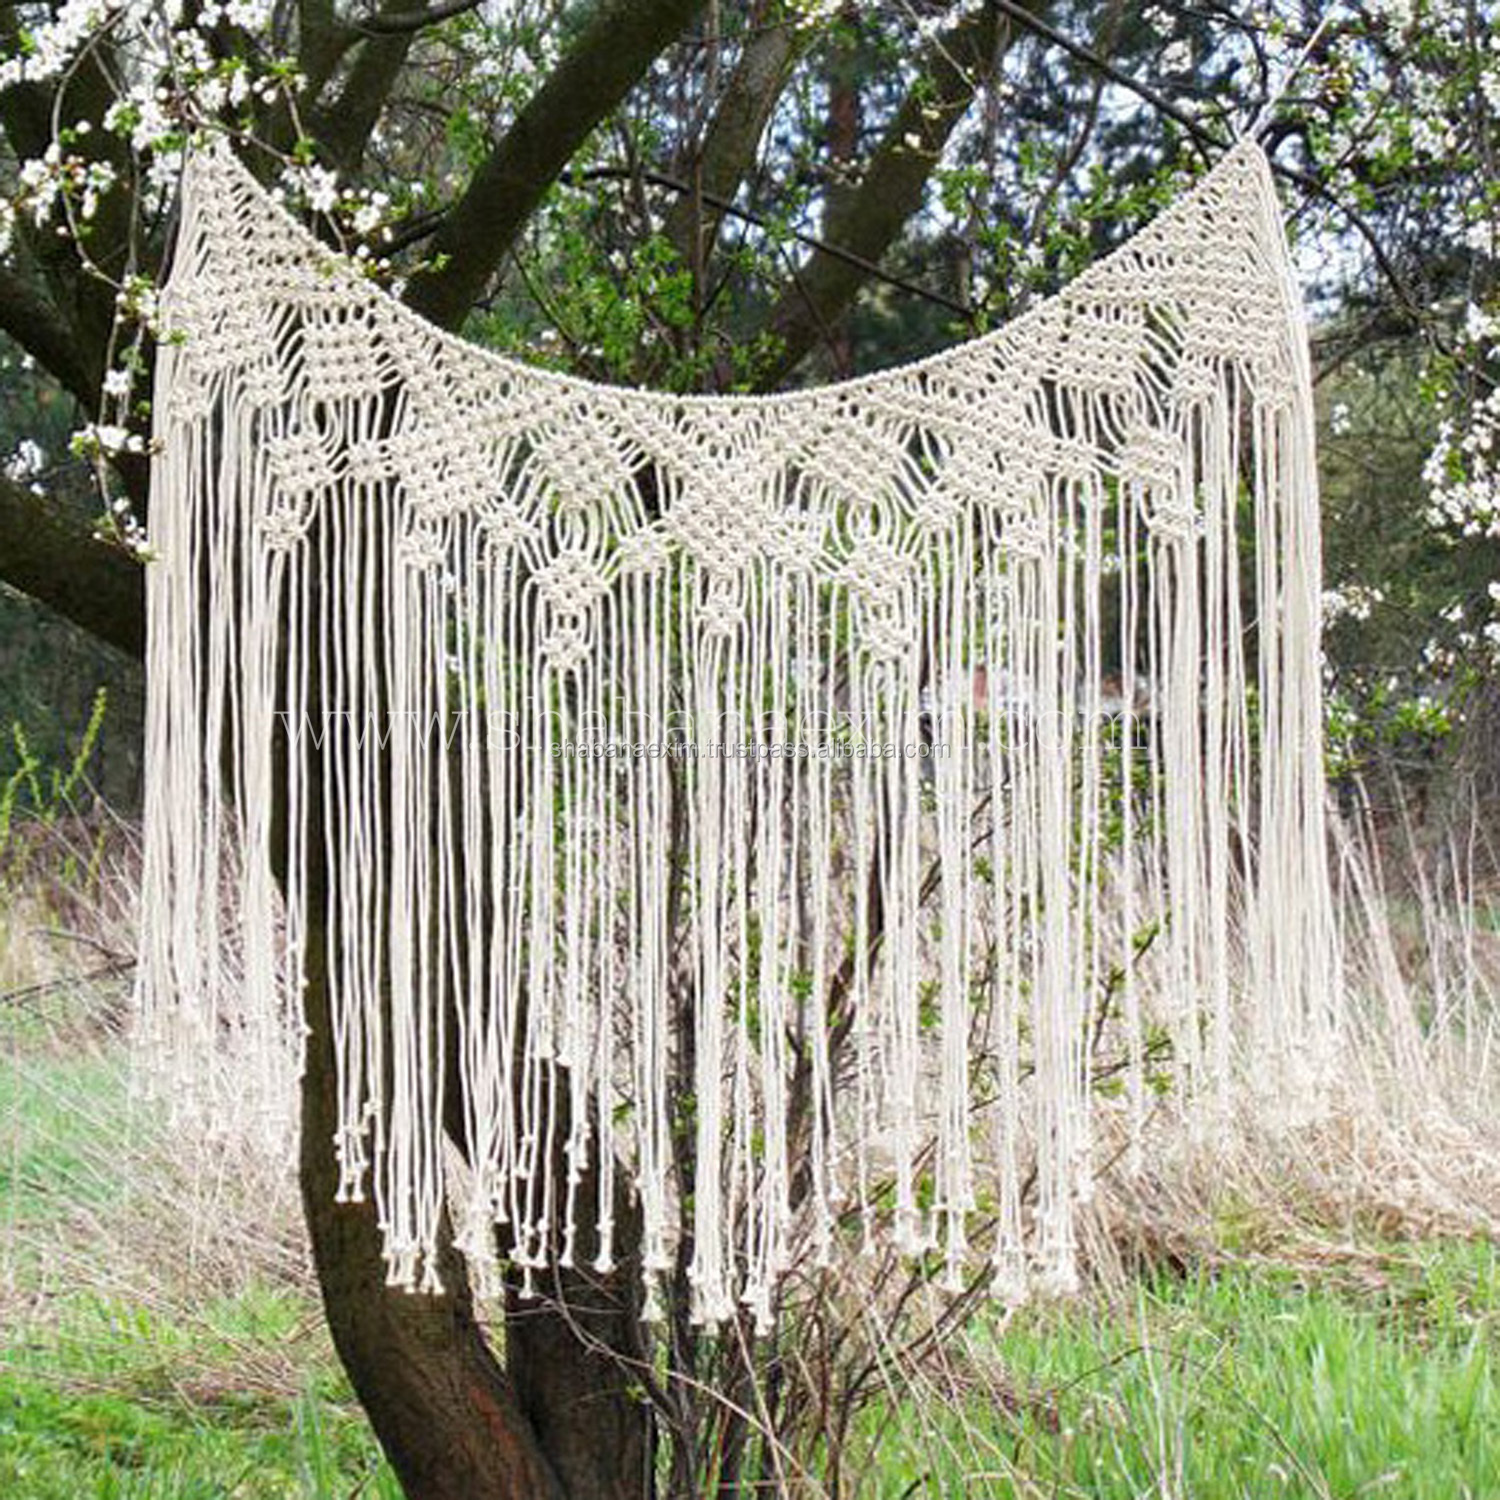 Vintage Bohemian Window Coverings Wall Hanging Macrame Curtains Buy Luxury European Style Window Curtain Christmas Wedding Backdrop Wall Hanging Curtain Product On Alibaba Com